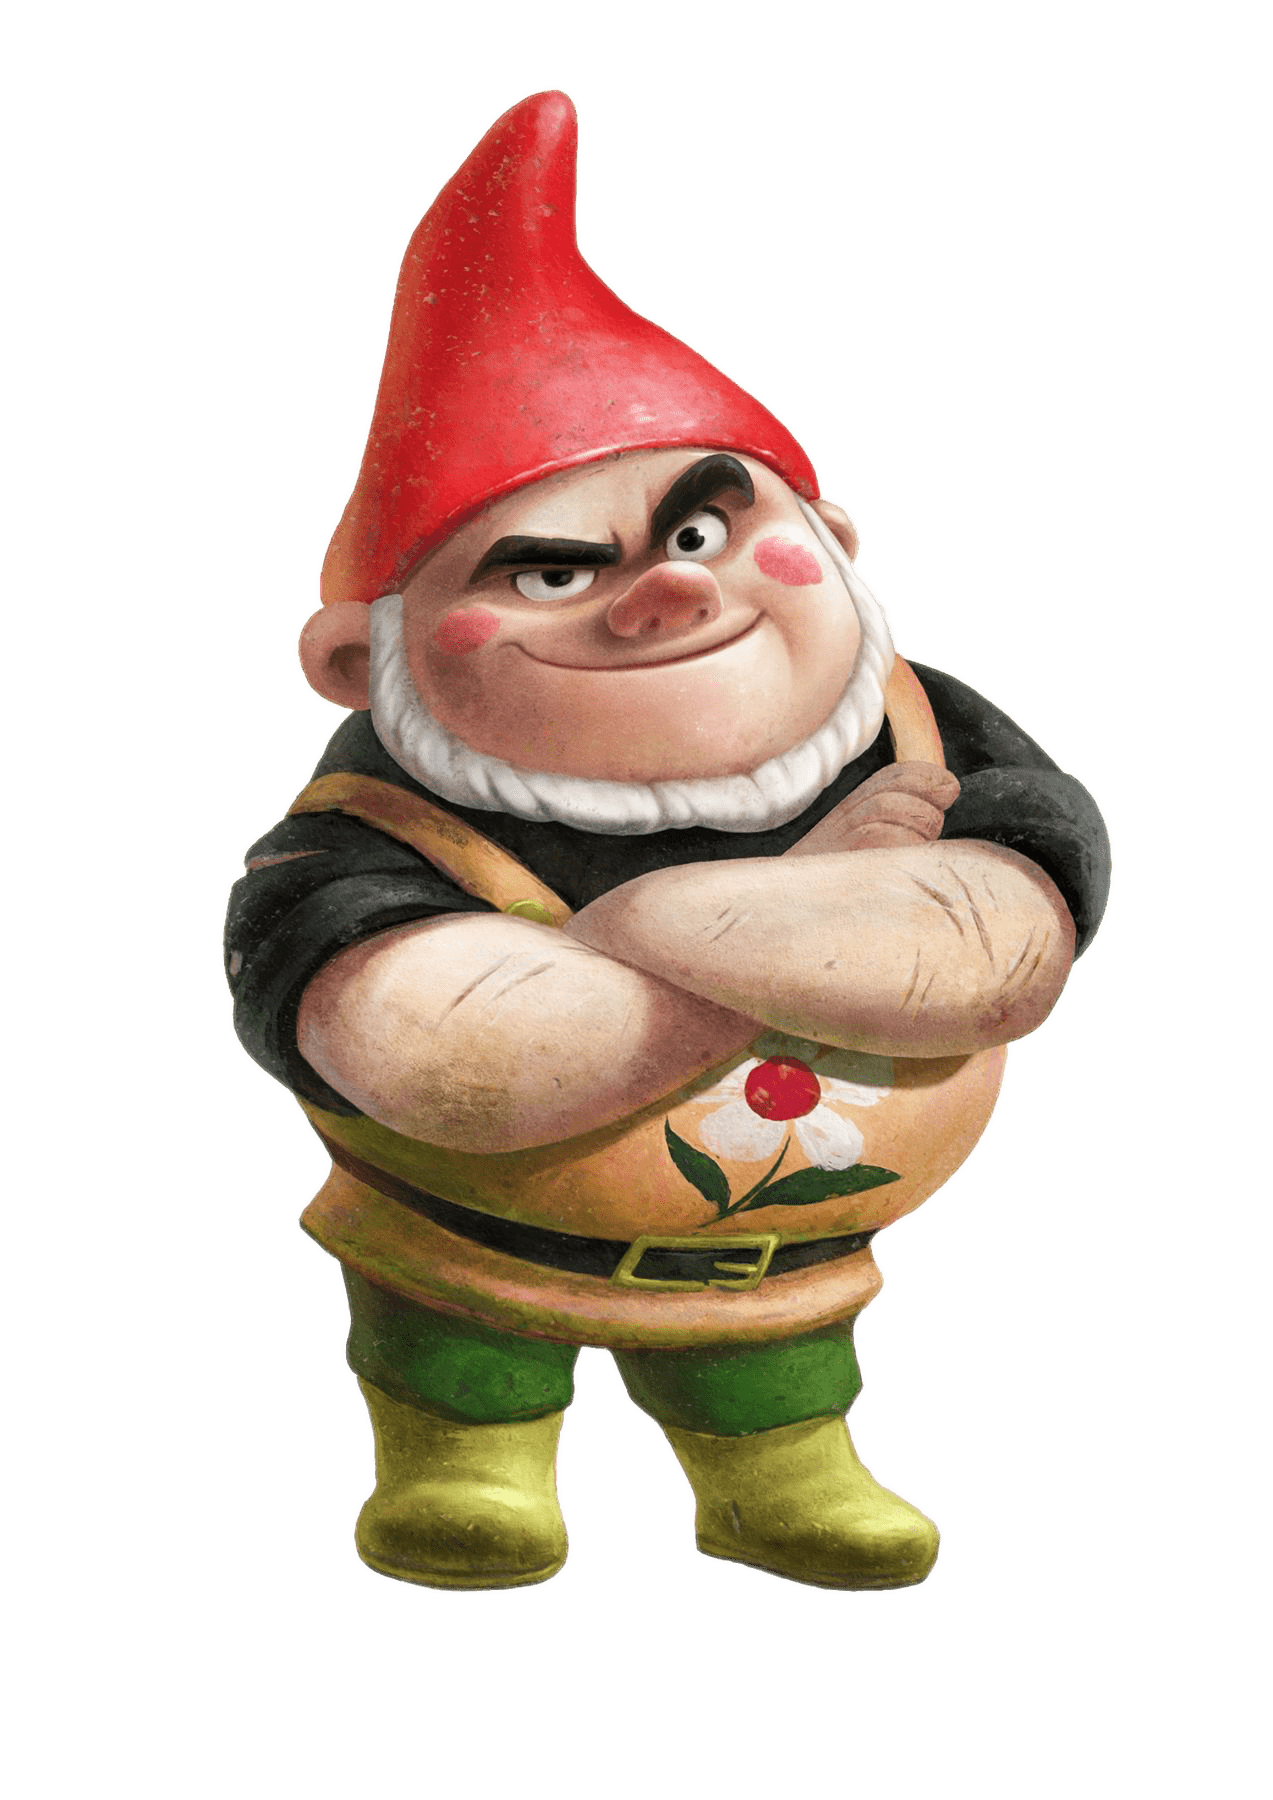 png freeuse stock Gnome transparent. Tybalt png stickpng download